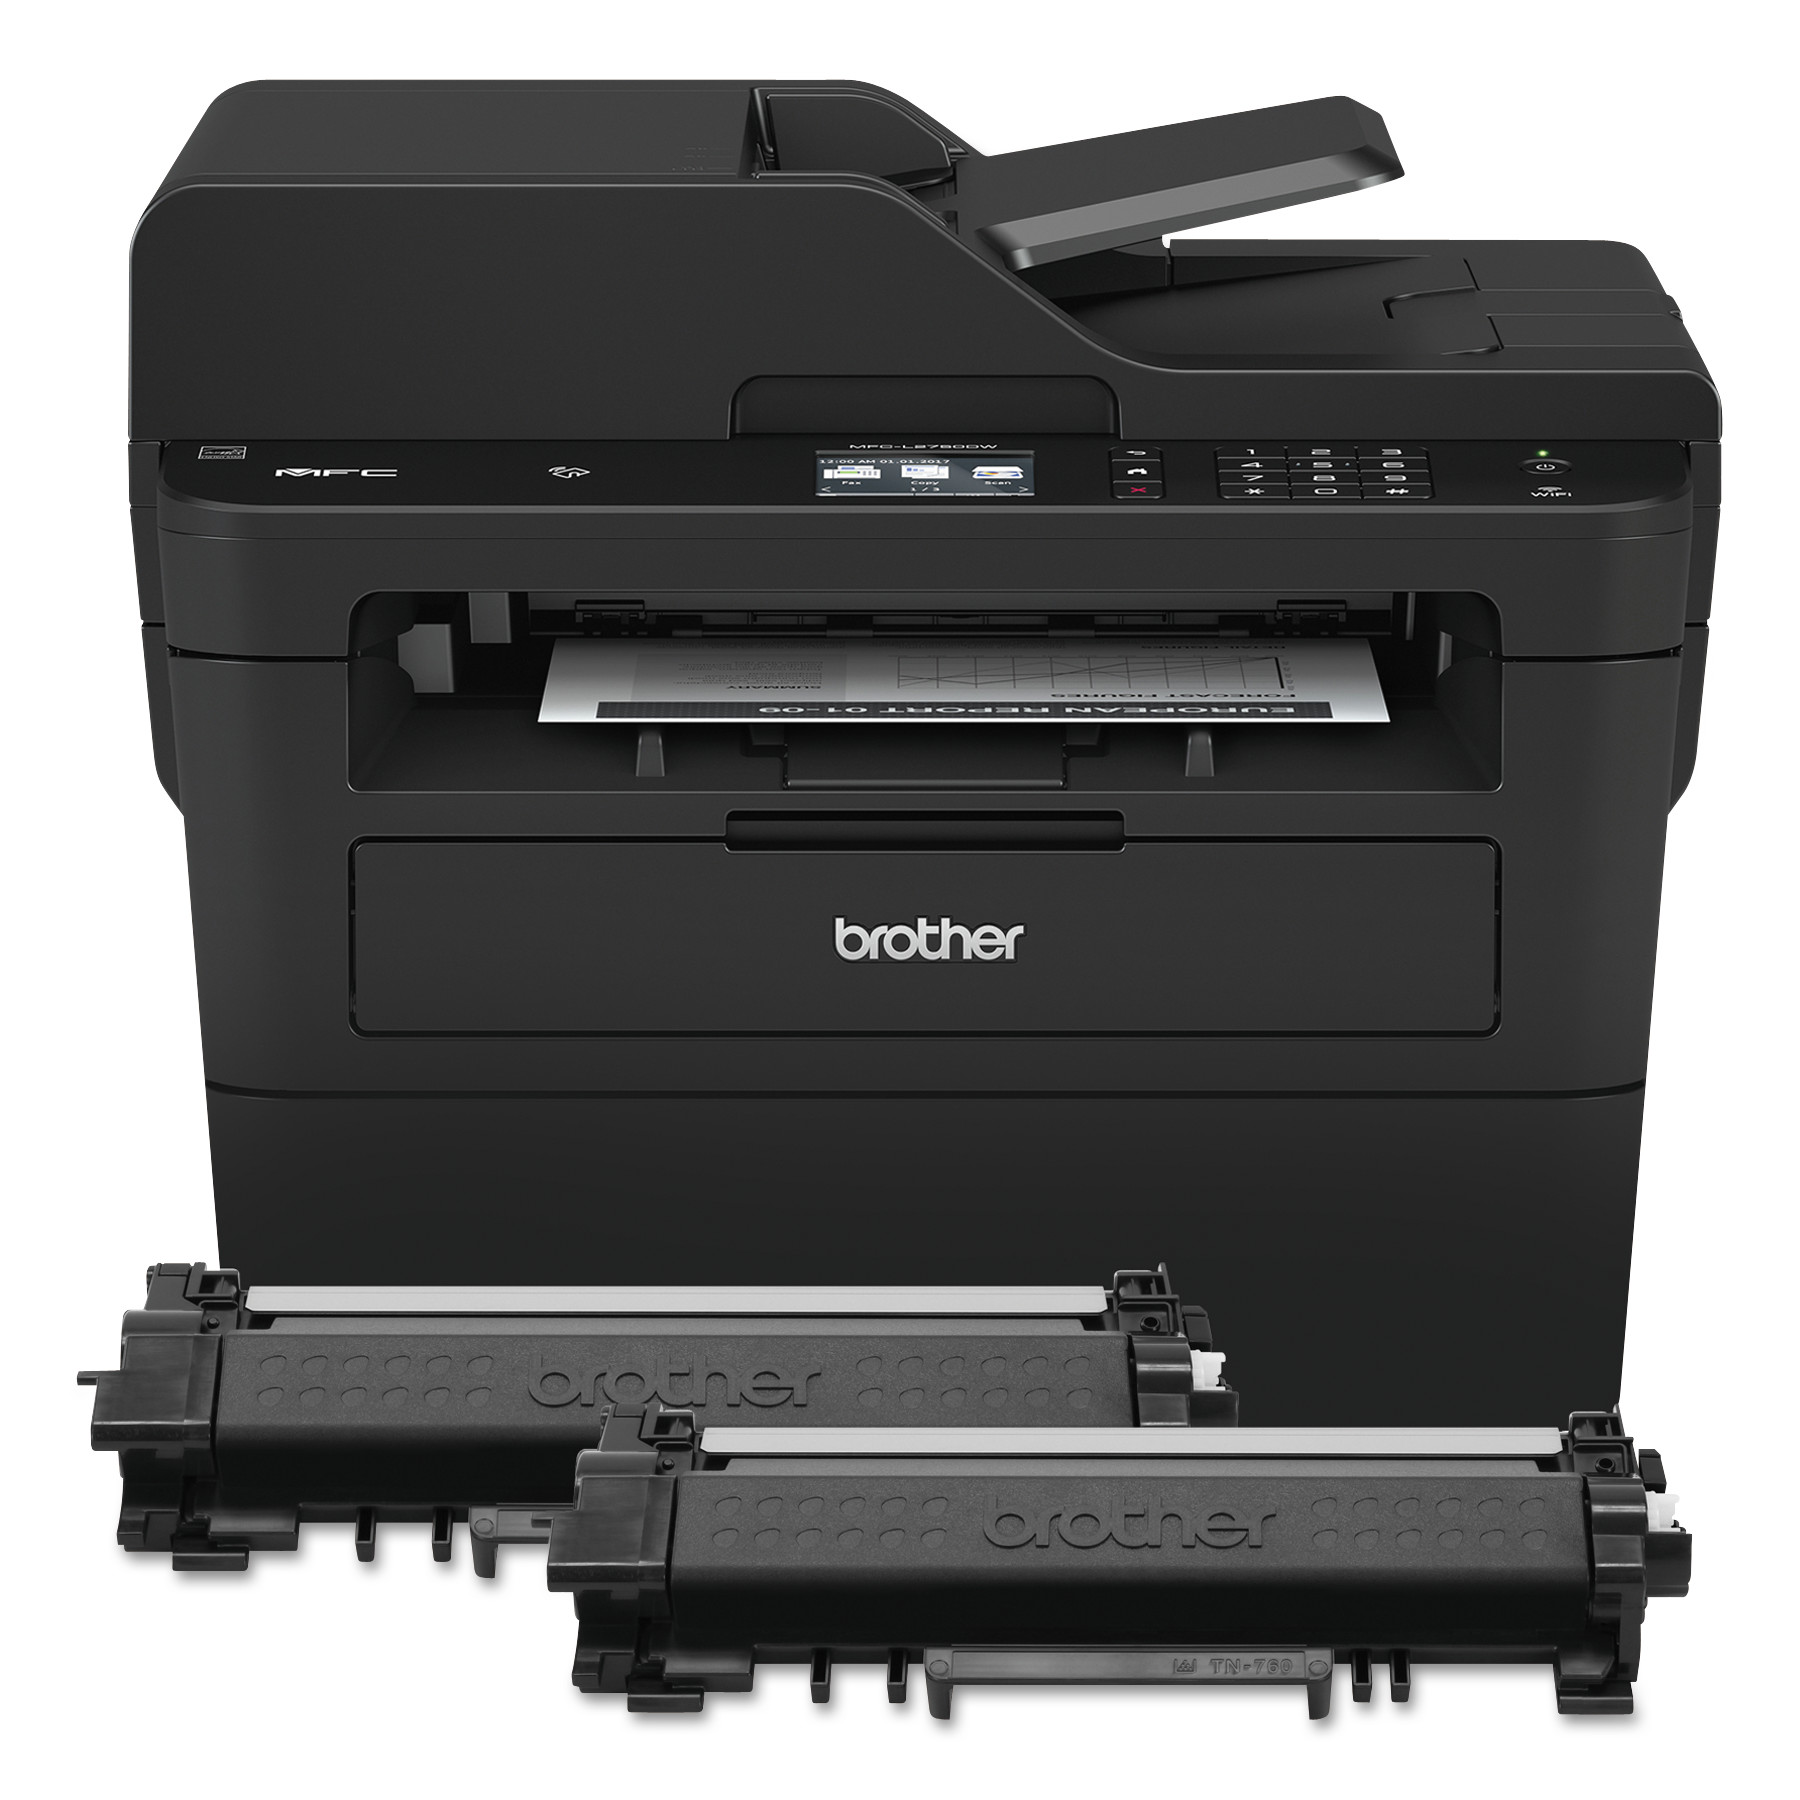 Brother MFC-L2750DWXL Laser Copier, Copy Fax Print Scan by Brother